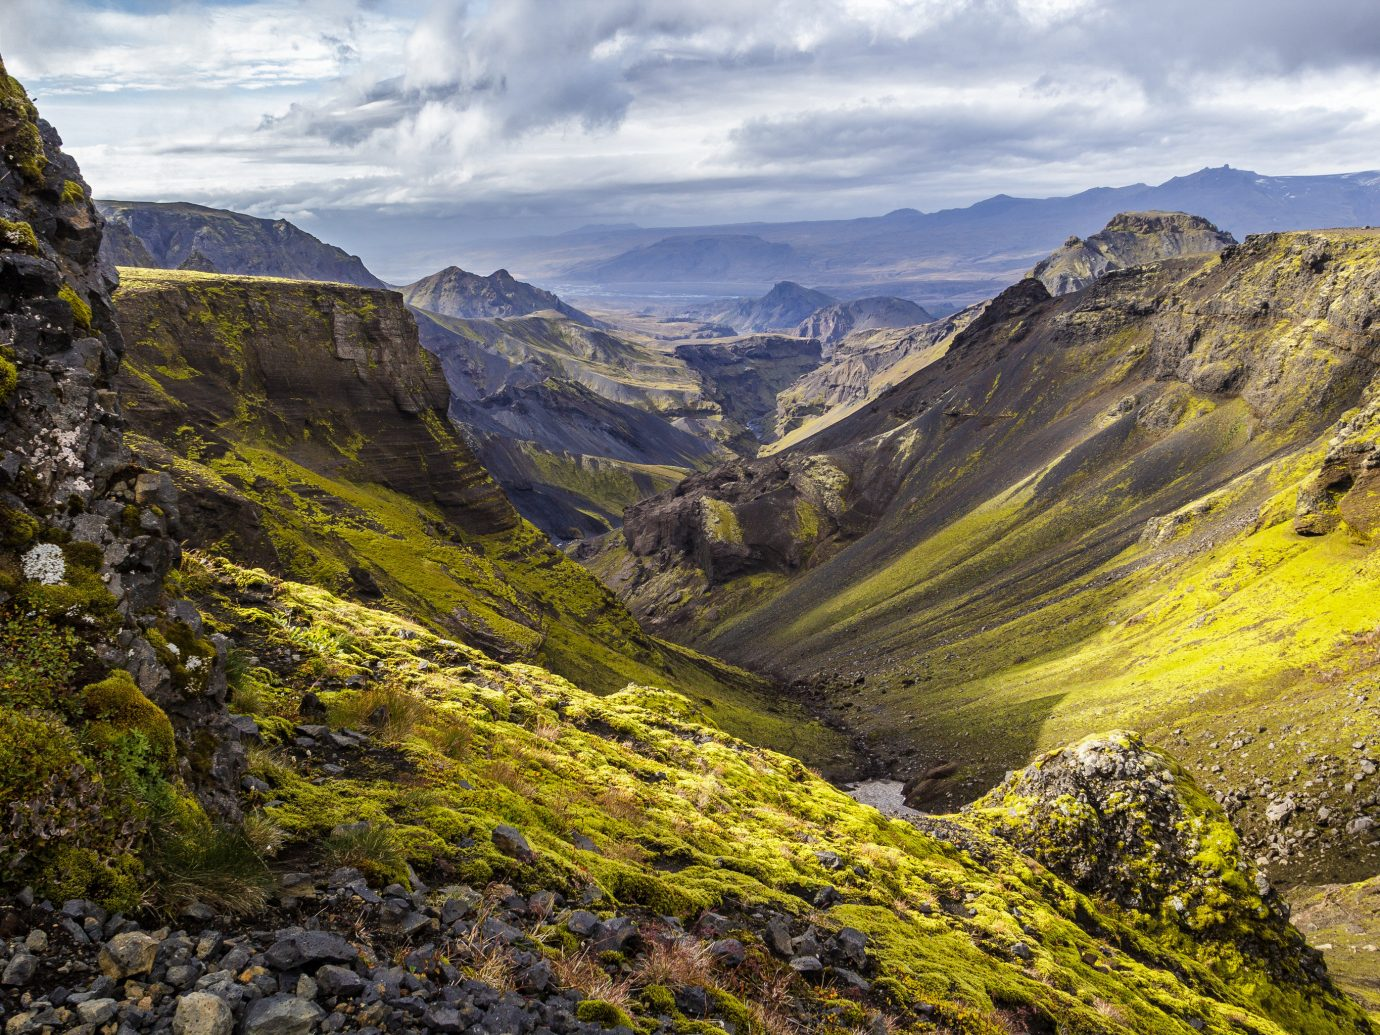 View of a valley in Iceland